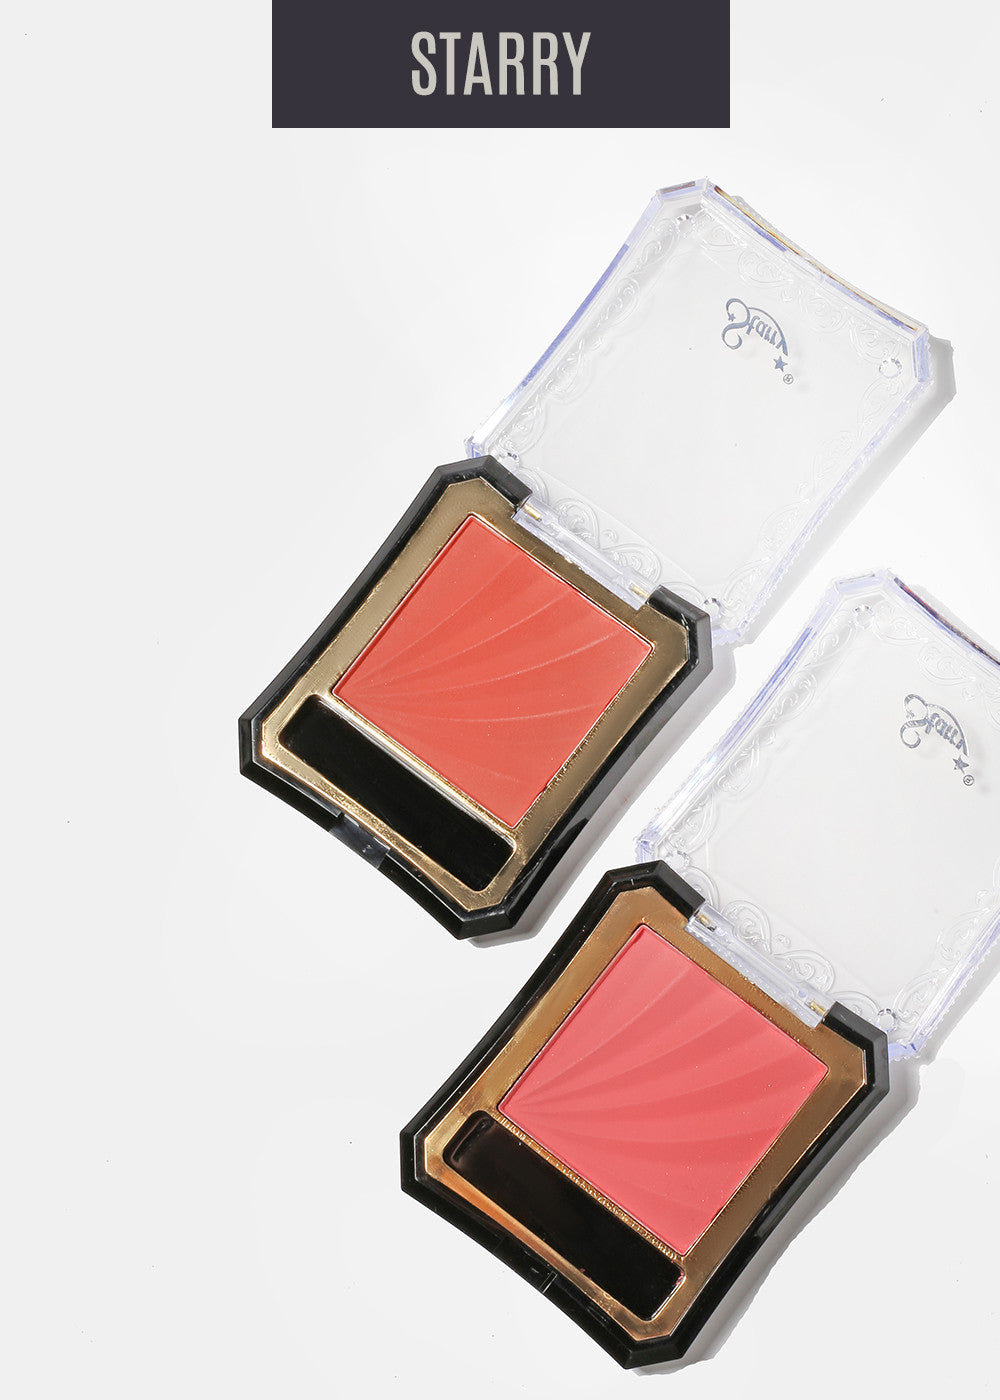 Starry Smooth and Luxe Blush